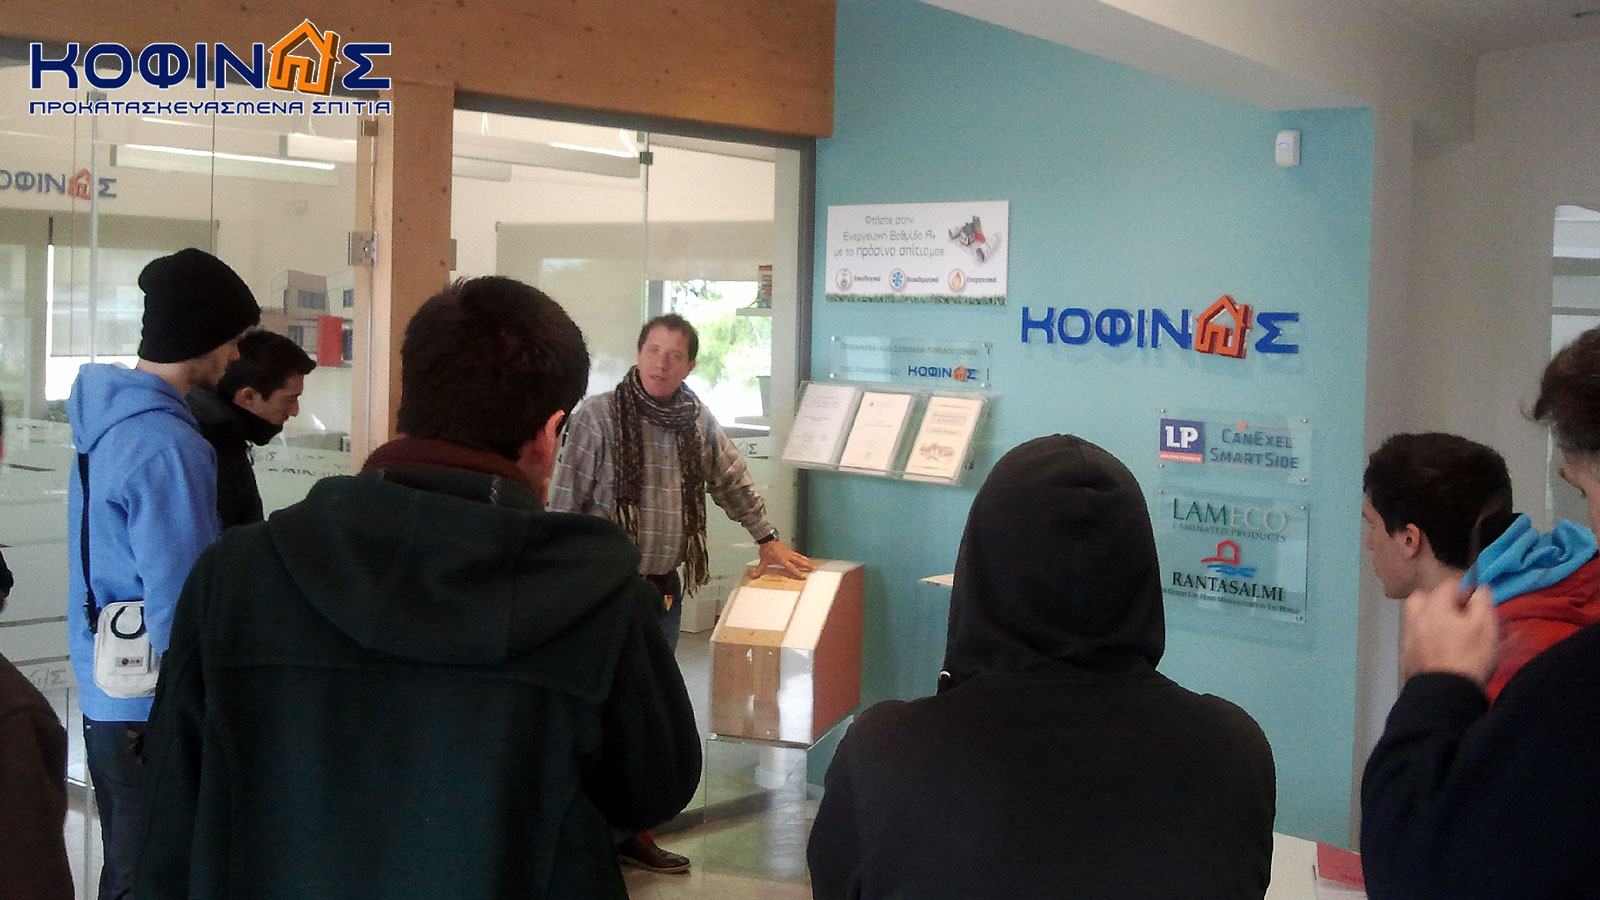 Educational visit from the Vocational Training Institute of Aghios Stefanos